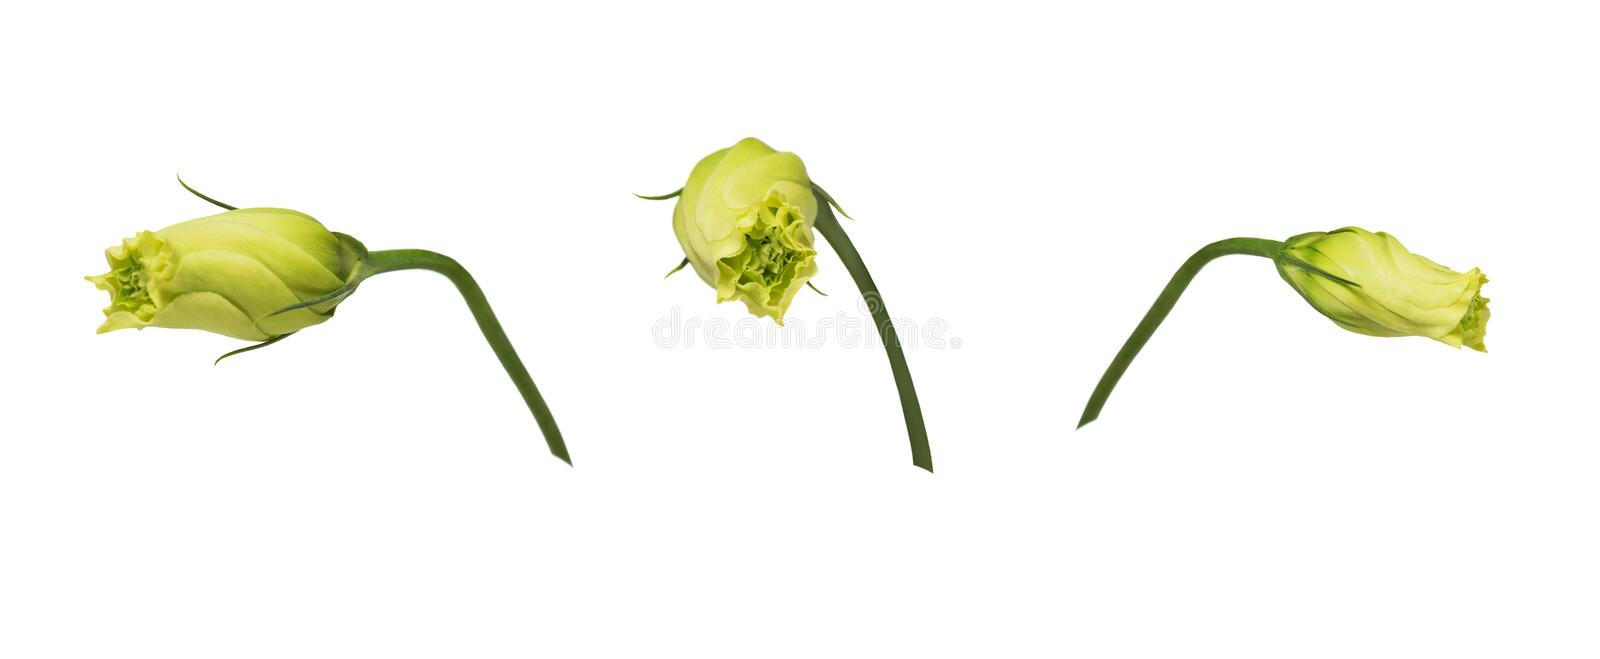 Closed yellow eustoma buds prairie gentian isolated on white background. Set of images. One flower shot at different angles. Side and front view royalty free stock images